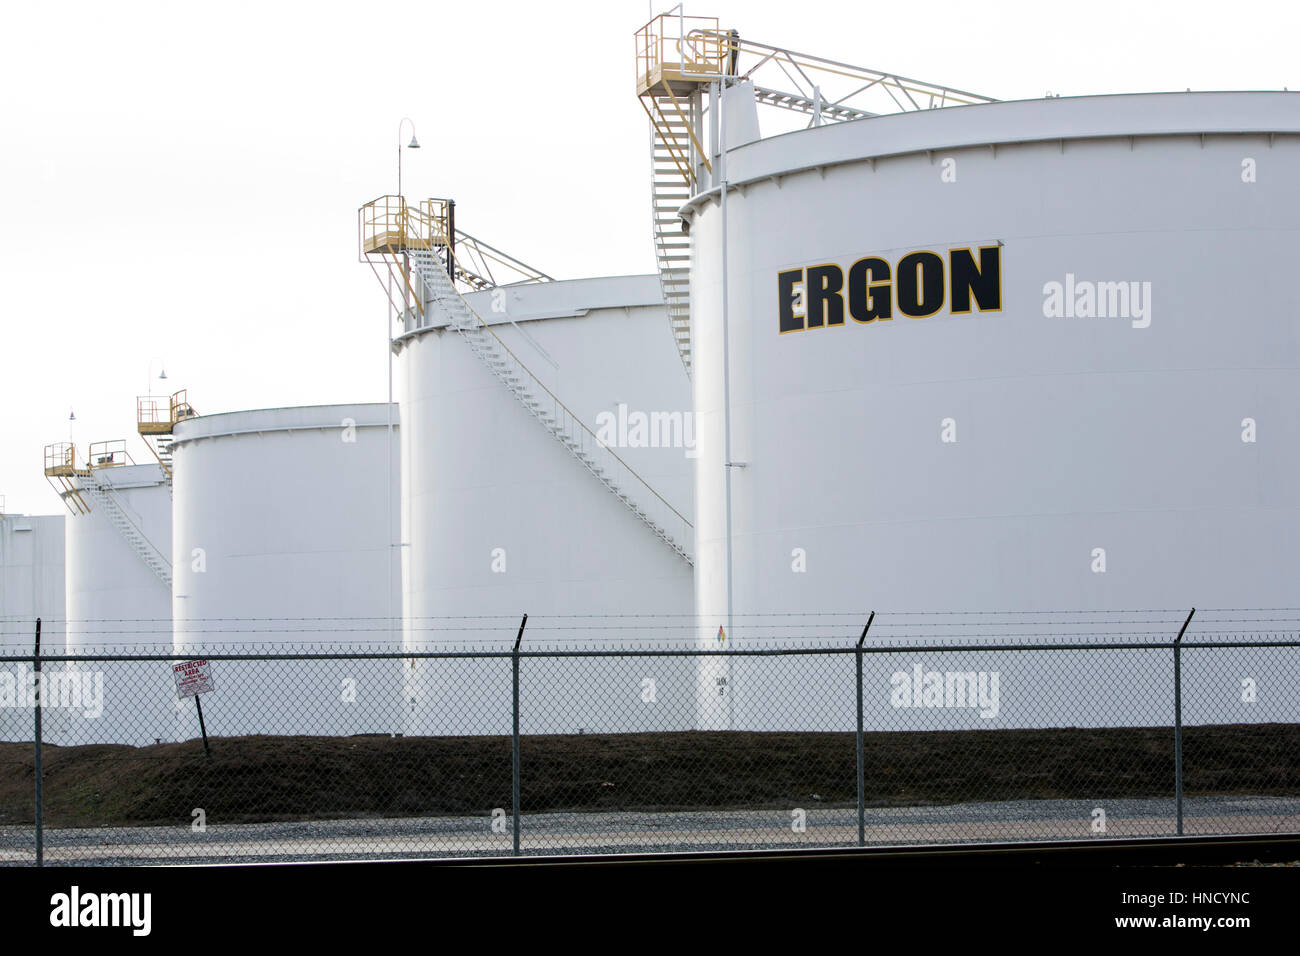 Ergon Stock Photos & Ergon Stock Images - Alamy